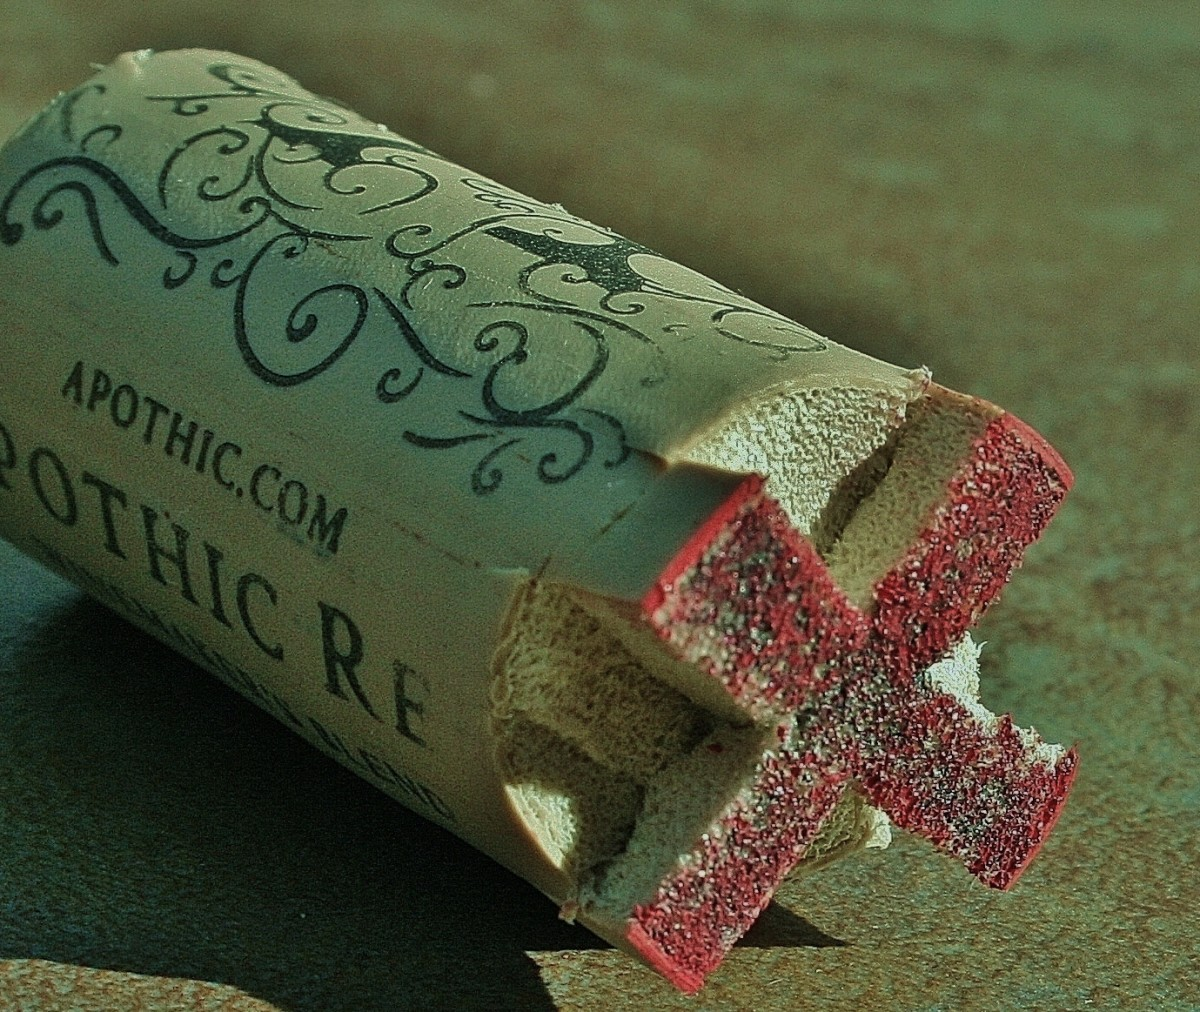 Just in case you're wondering, that red on the cork is paint, not blood.